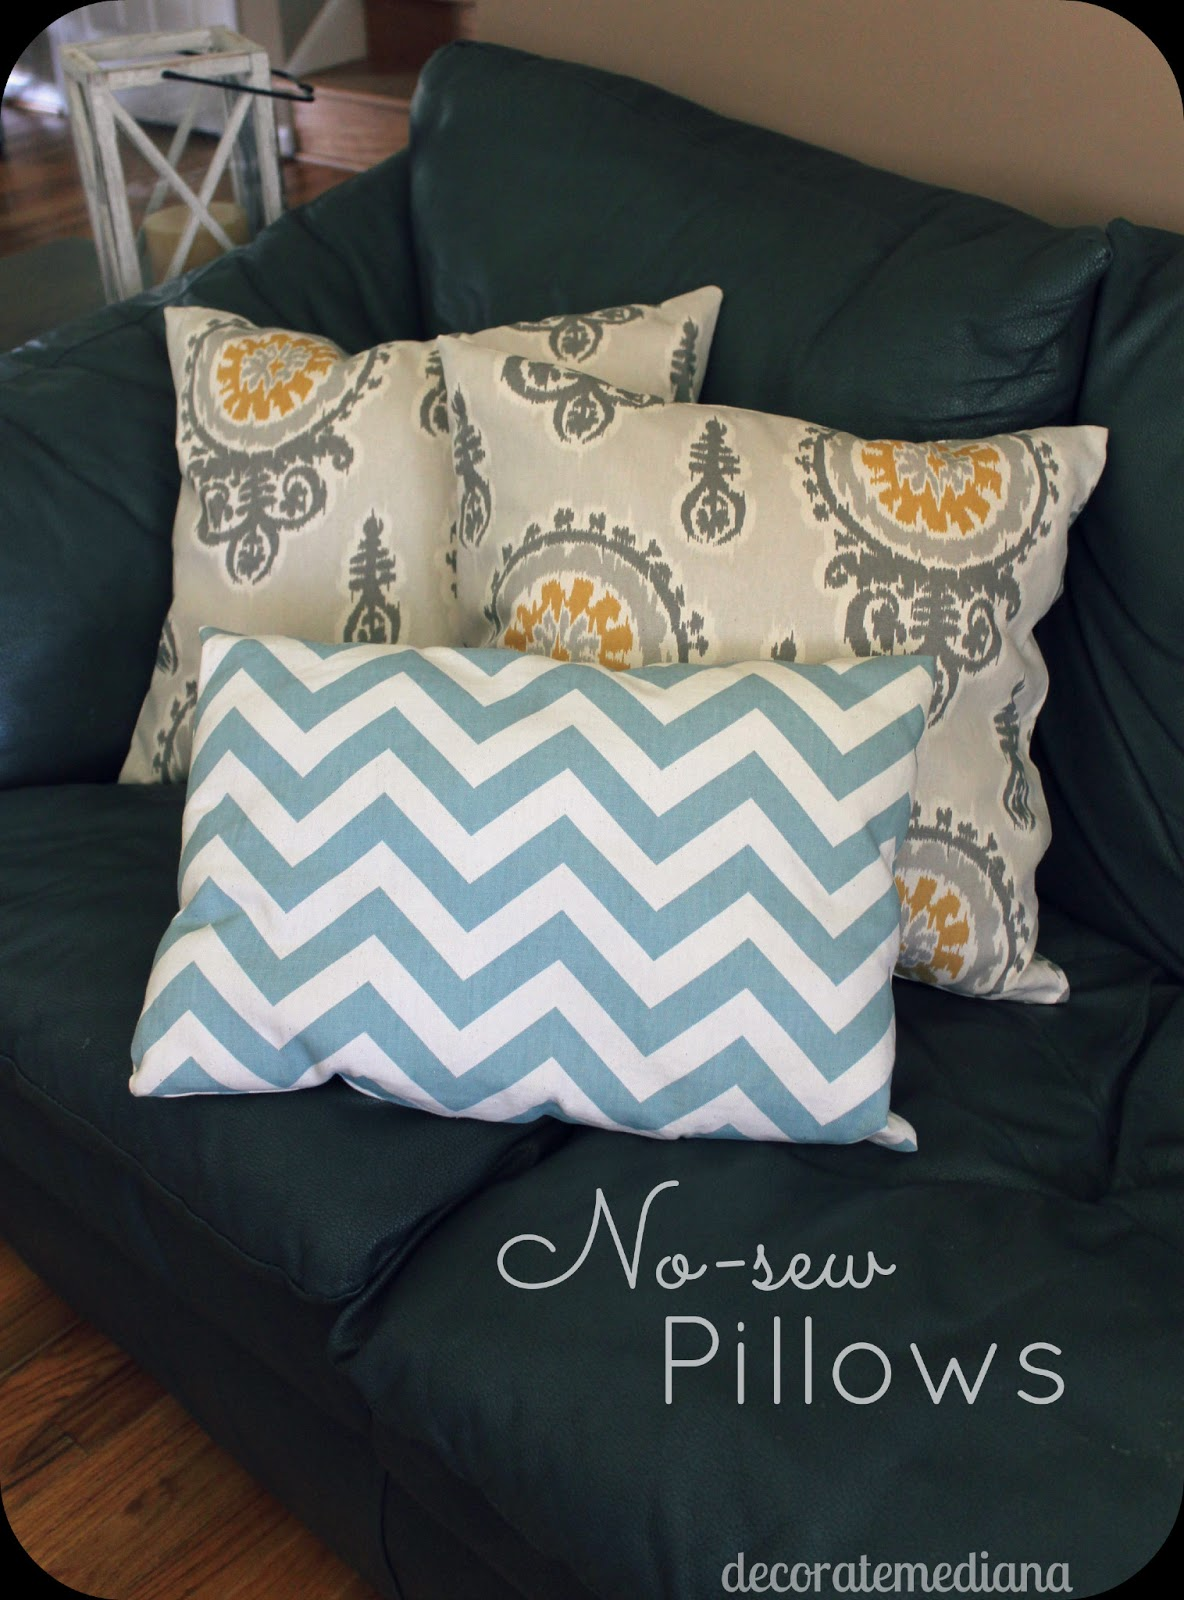 Someday Crafts: No-Sew Pillows